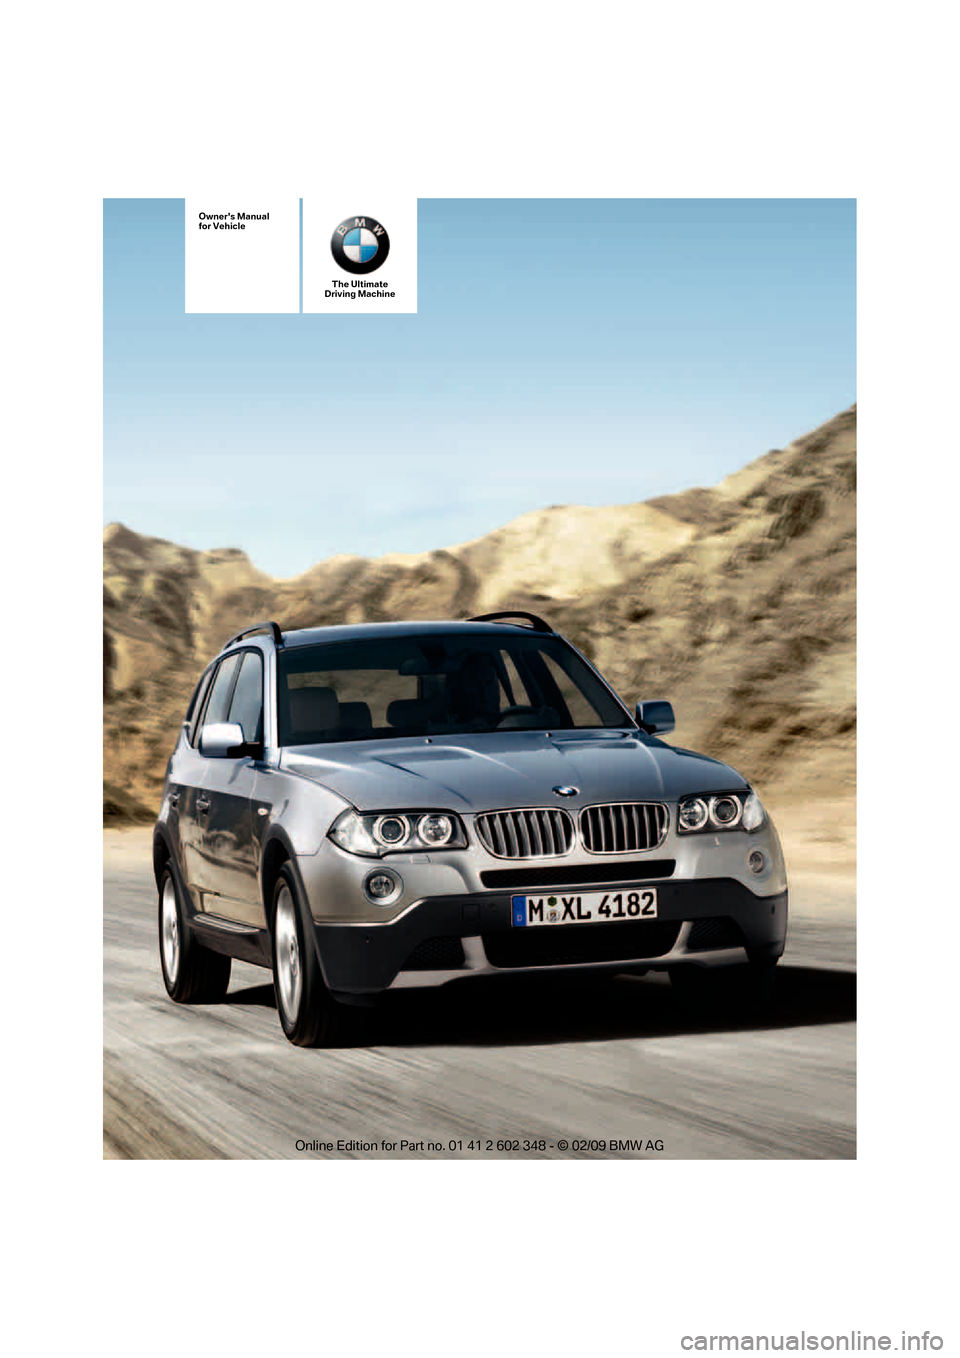 bmw x3 xdrive 30i 2010 e83 owner 39 s manual. Black Bedroom Furniture Sets. Home Design Ideas